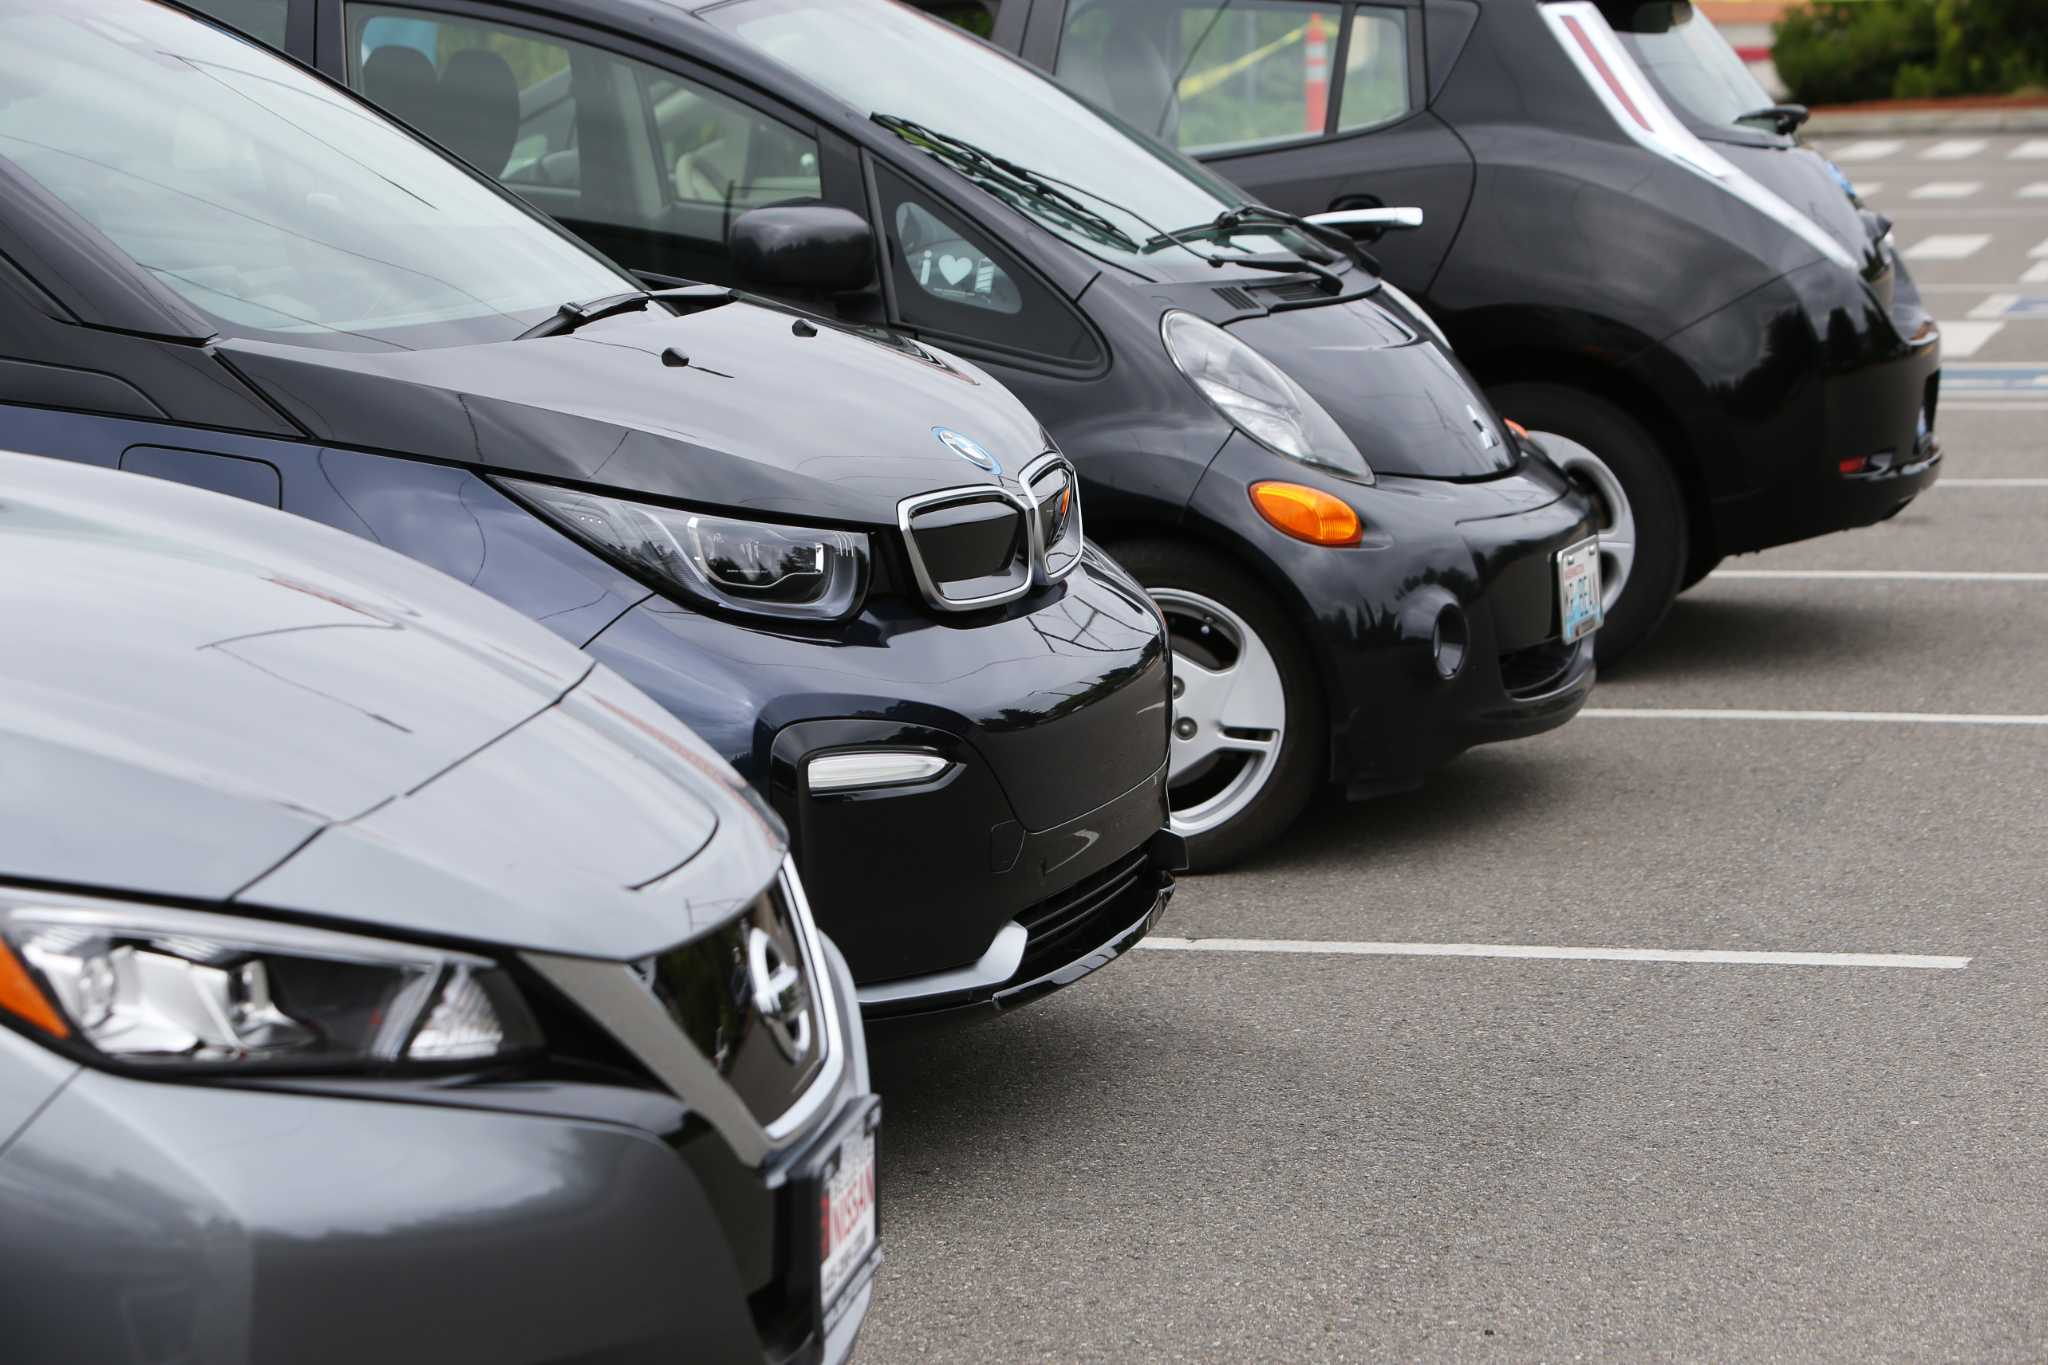 Test drive 16 electric vehicles at Puget Sound Energy events